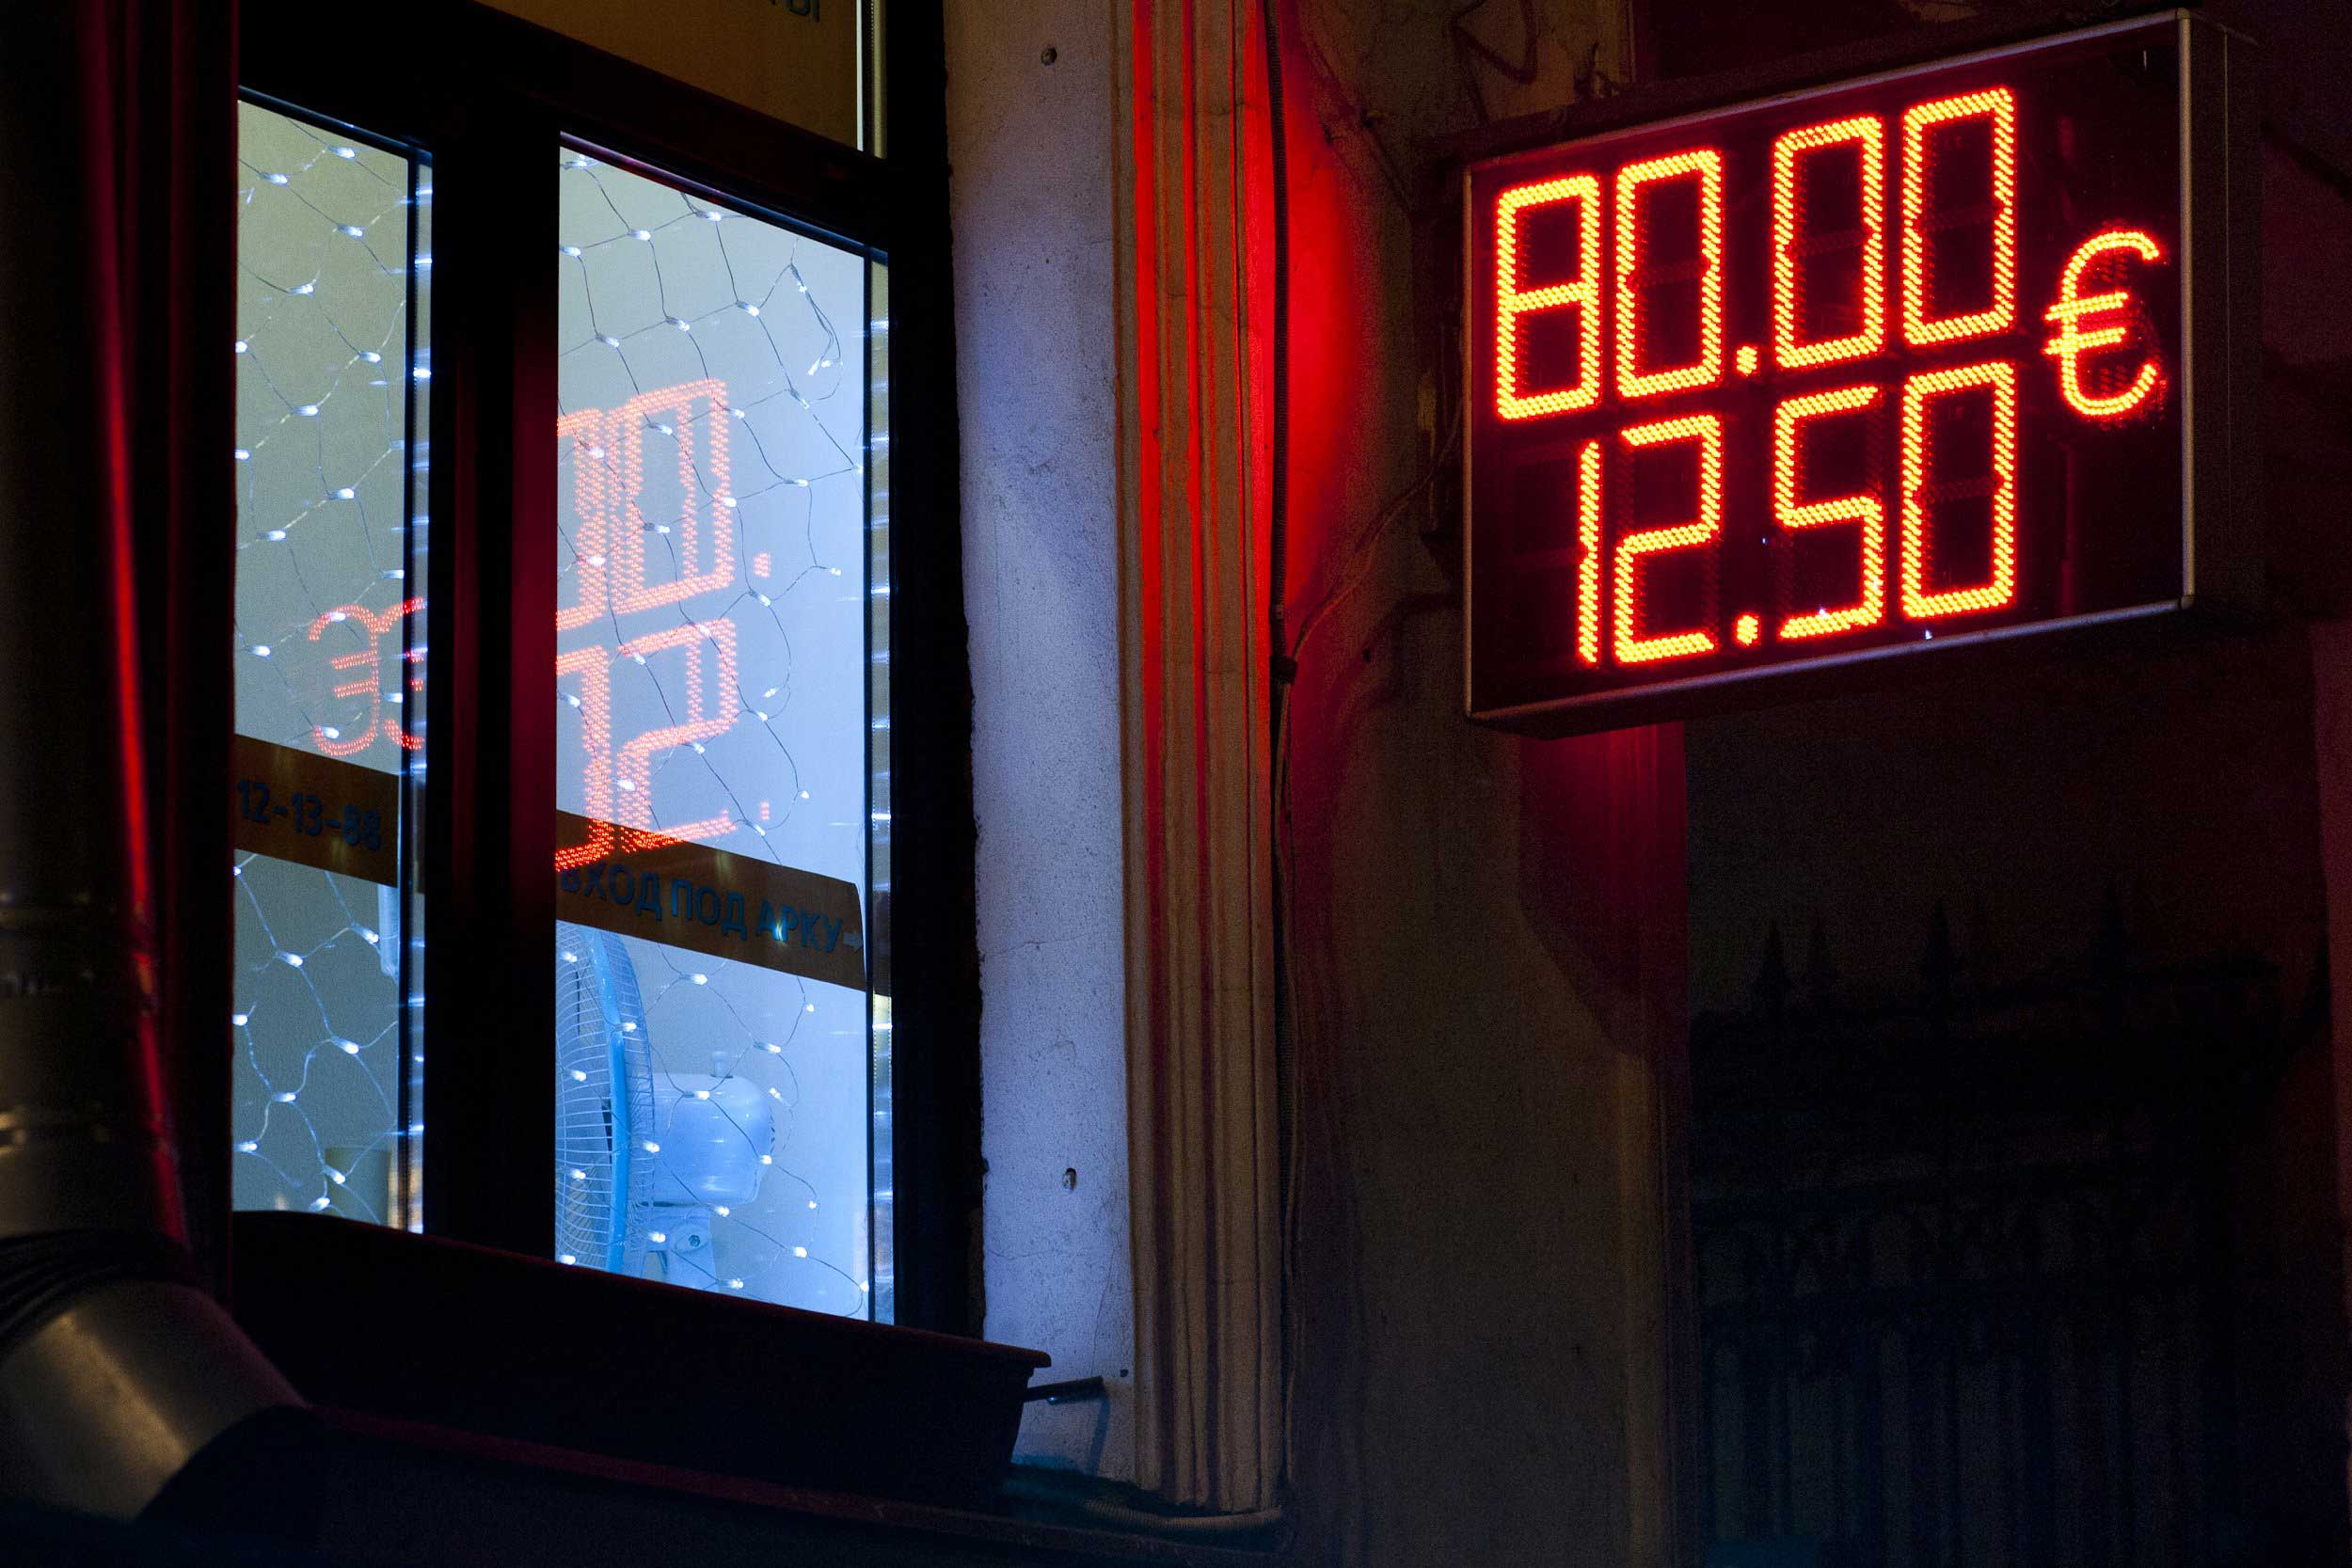 Dec. 16, 2014. Russian currency dropped to 100 rubles to one euro, more then 25 per cent per a day. The continued drop in the price of crude oil and Western sanctions against Russia over the Ukraine crisis are being blamed for plunging the rouble to a record low against dollar and euro.